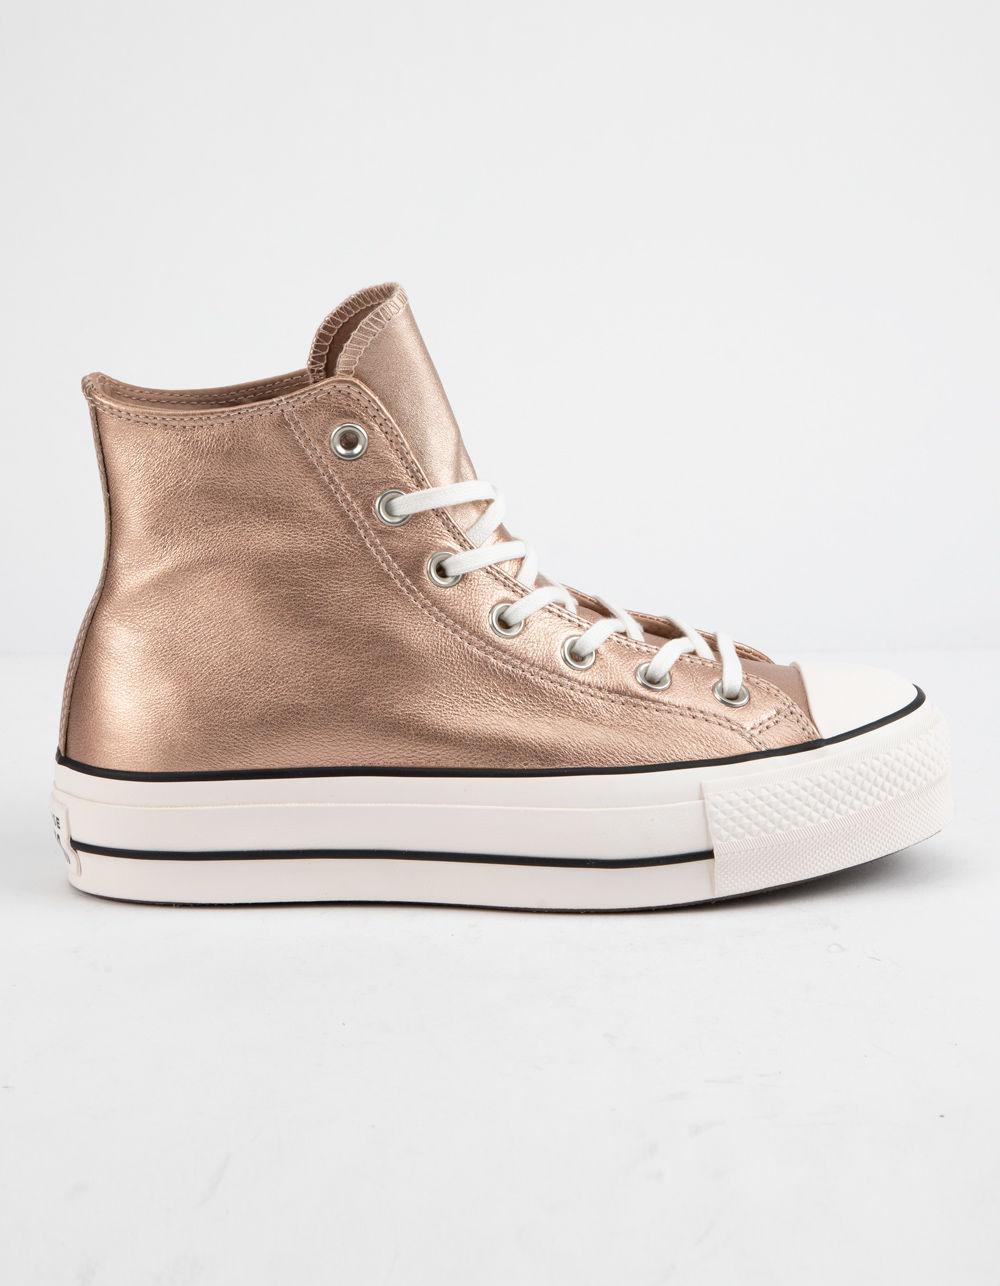 784eac223 Converse Chuck Taylor All Star Lift Particle Beige & White Womens ...